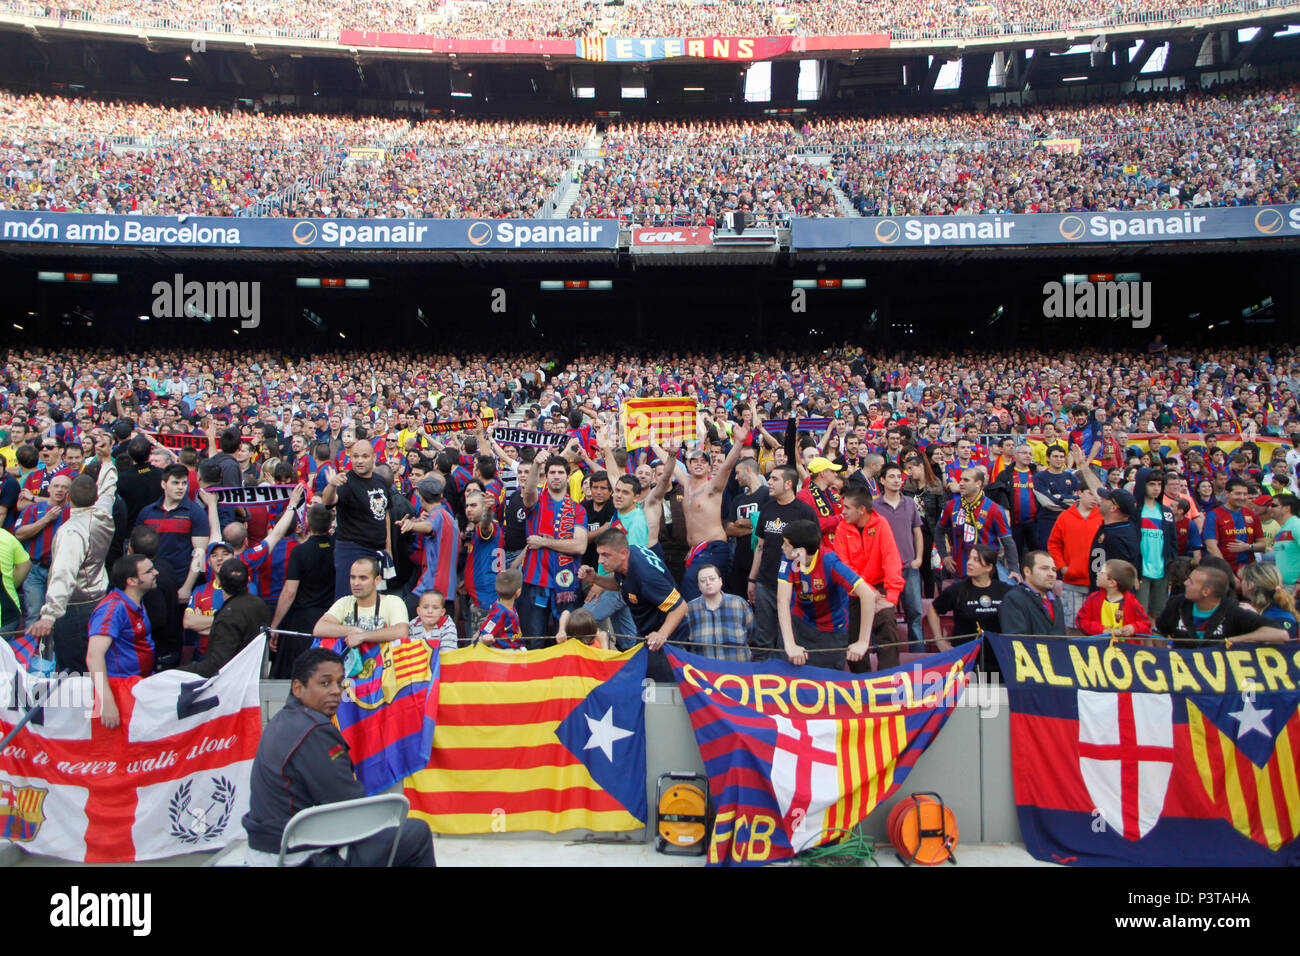 barcelona catalonia spain football fans in the camp nou stadium in barcelona stock photo alamy https www alamy com barcelona catalonia spain football fans in the camp nou stadium in barcelona image208903558 html